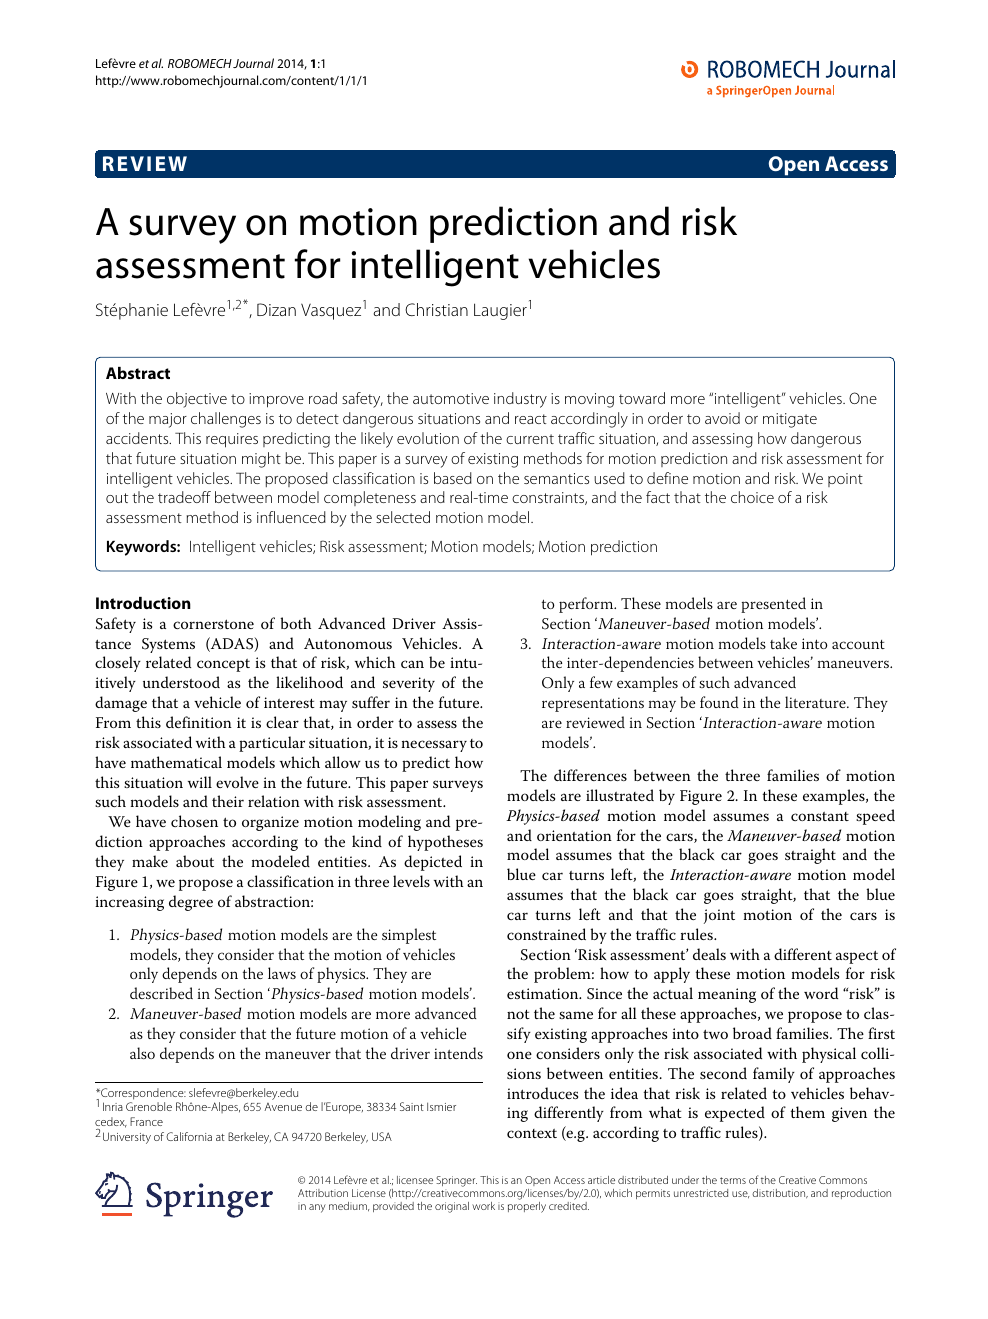 A survey on motion prediction and risk assessment for intelligent